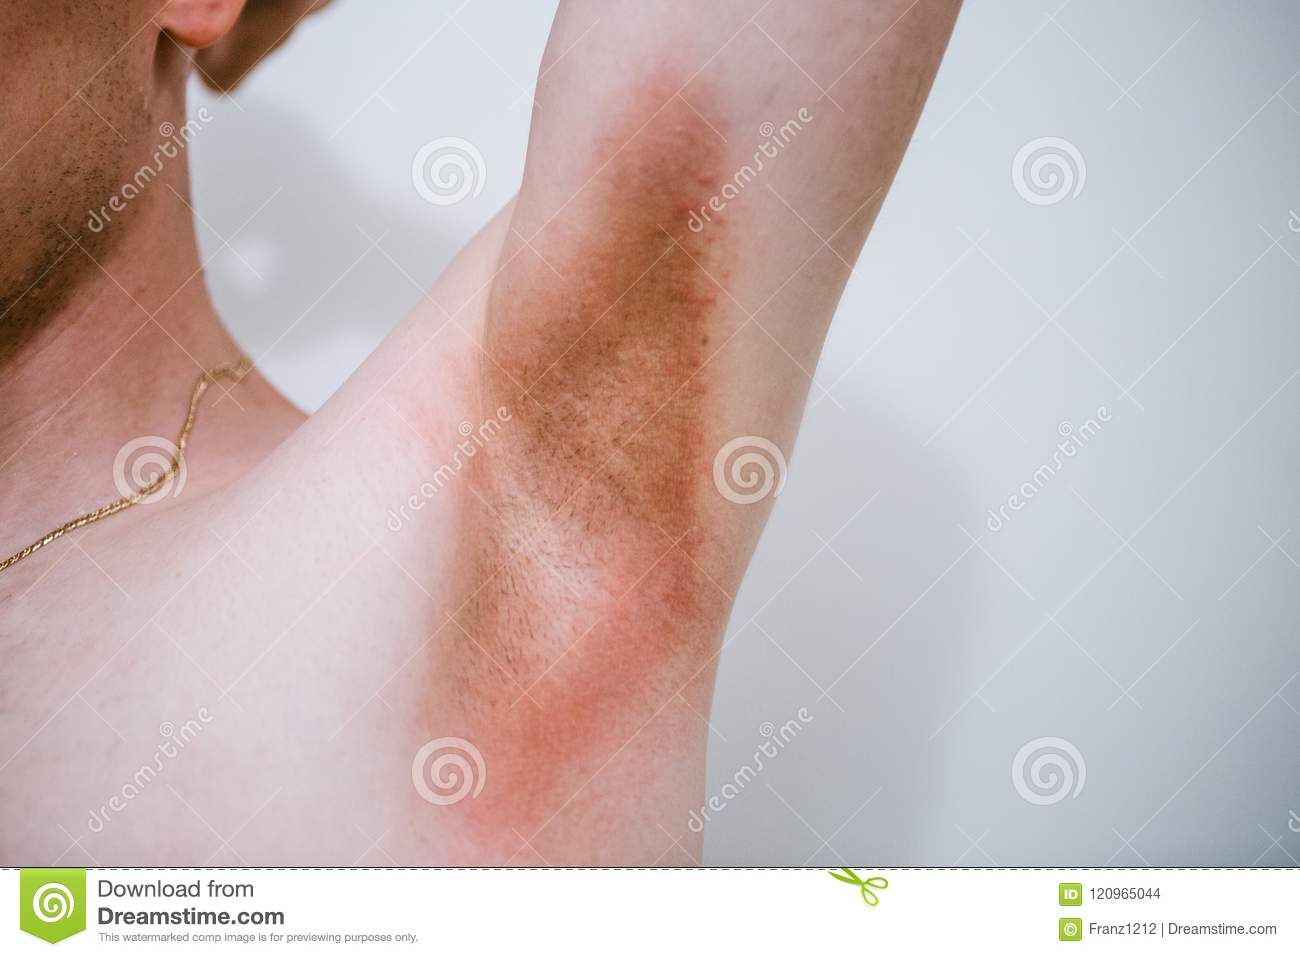 A Man With A Skin Disease In The Armpit Area. Prickly Heat. Stock ...